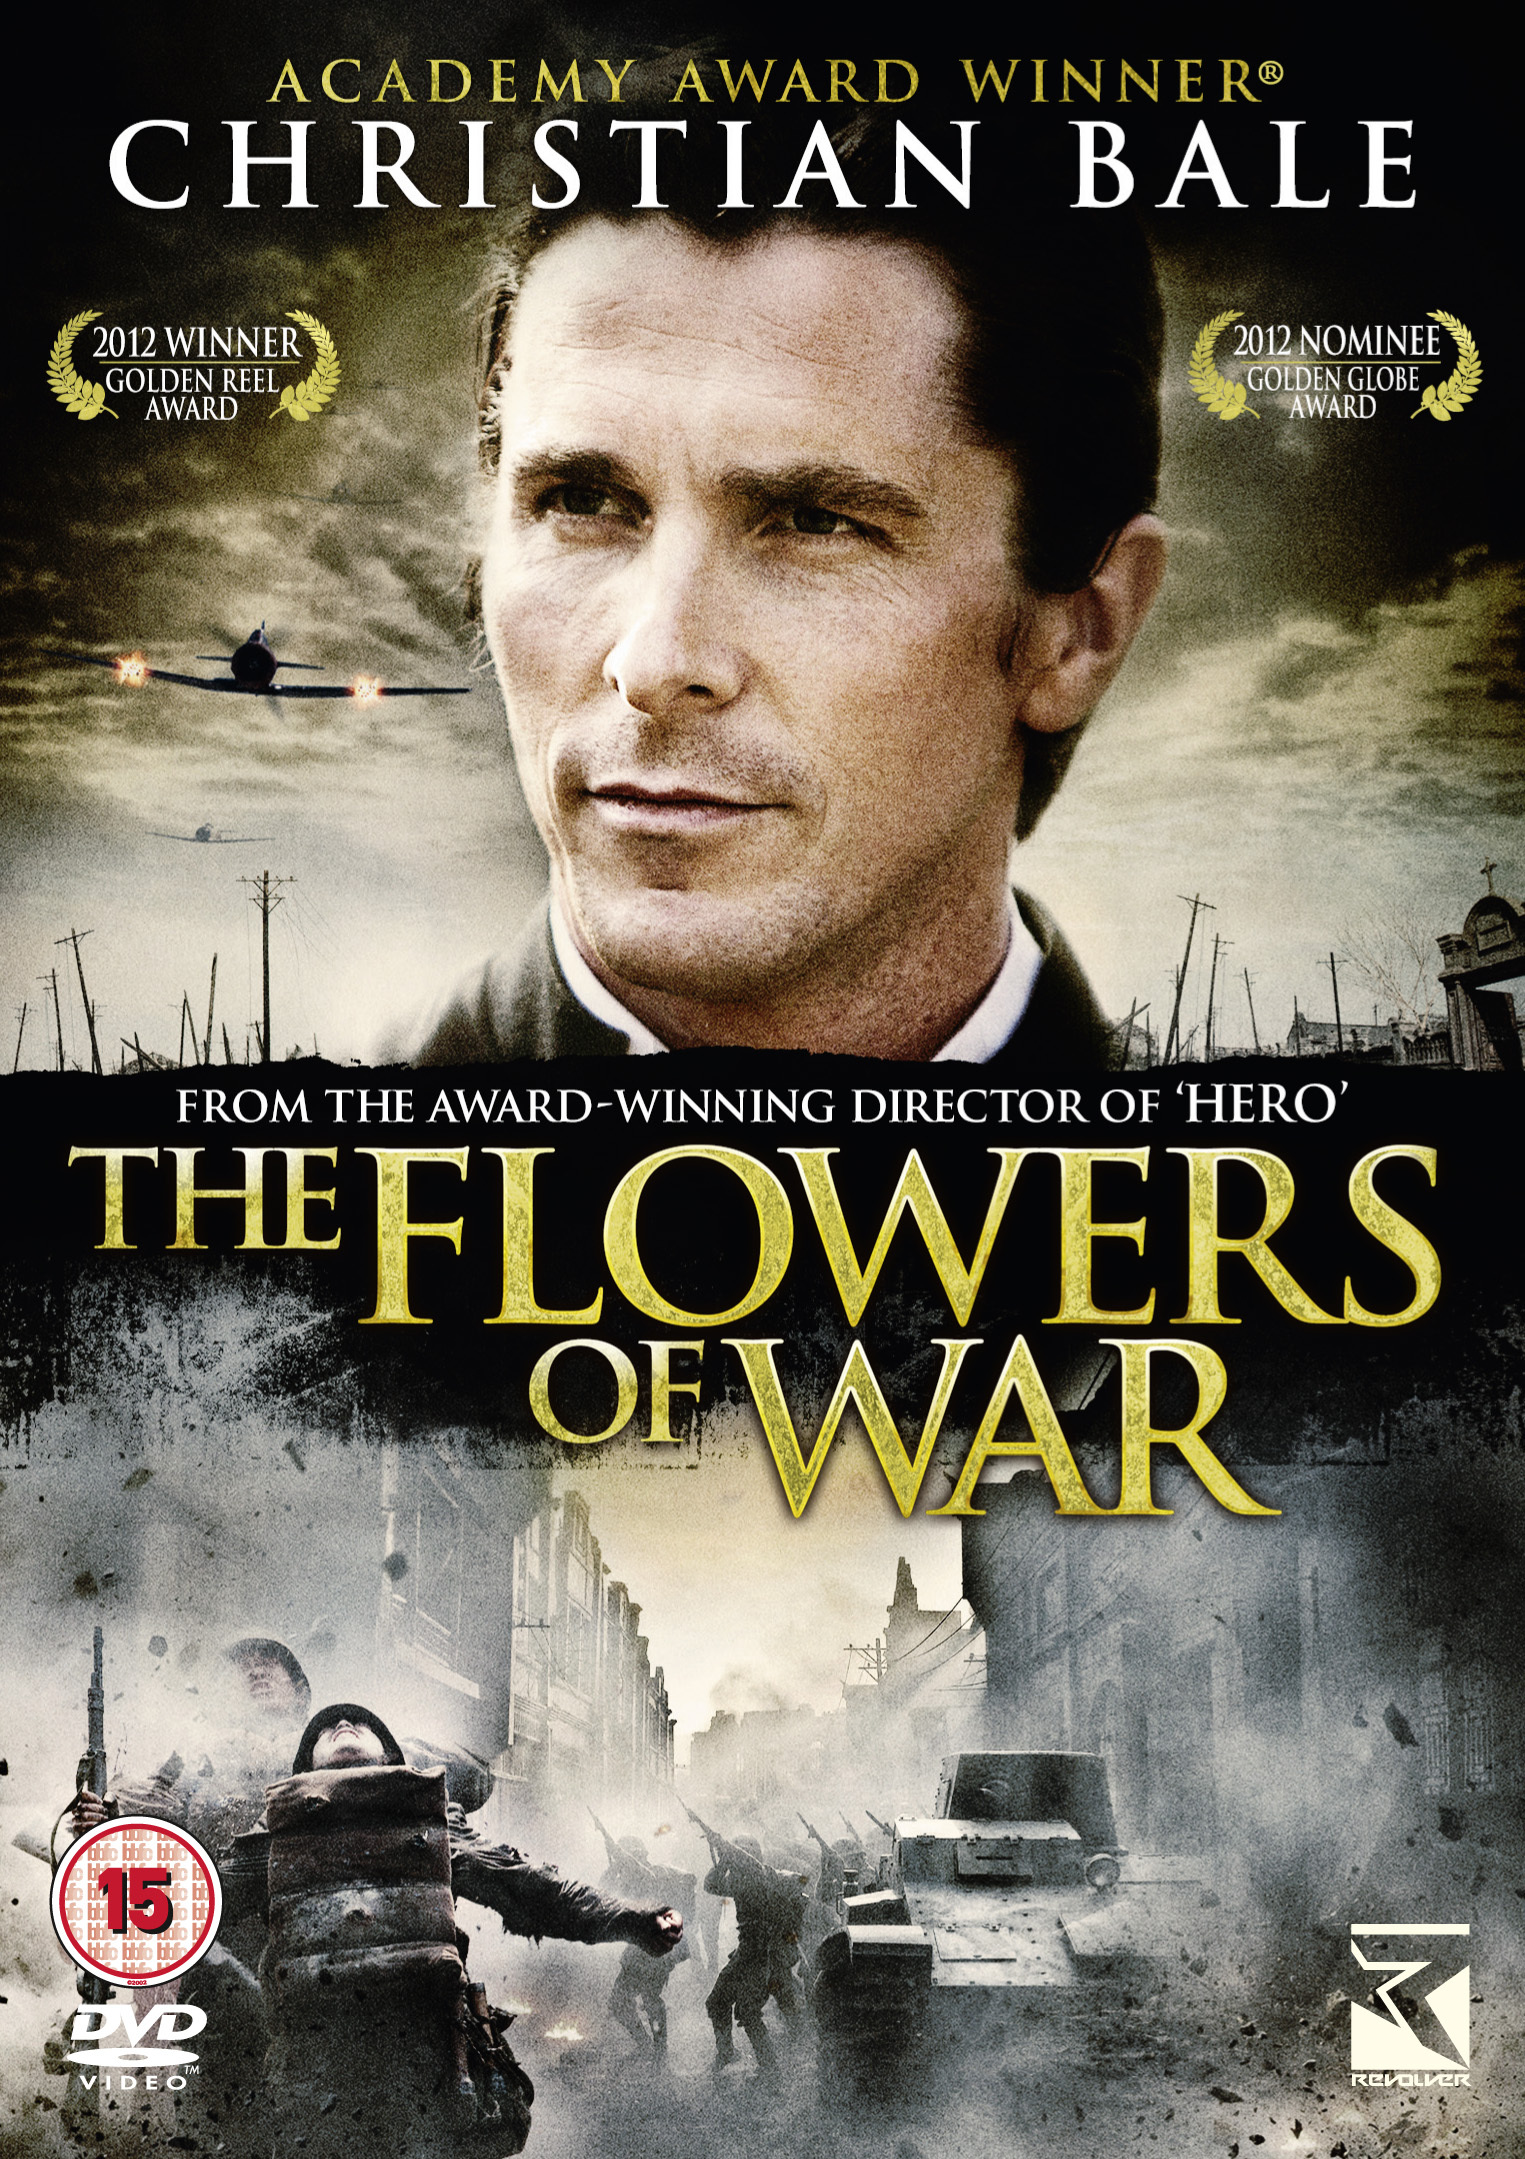 CHRISTIAN BALE WAR EPIC 'THE FLOWERS OF WAR' TO RECEIVE UK RELEASE BY REVOLVE